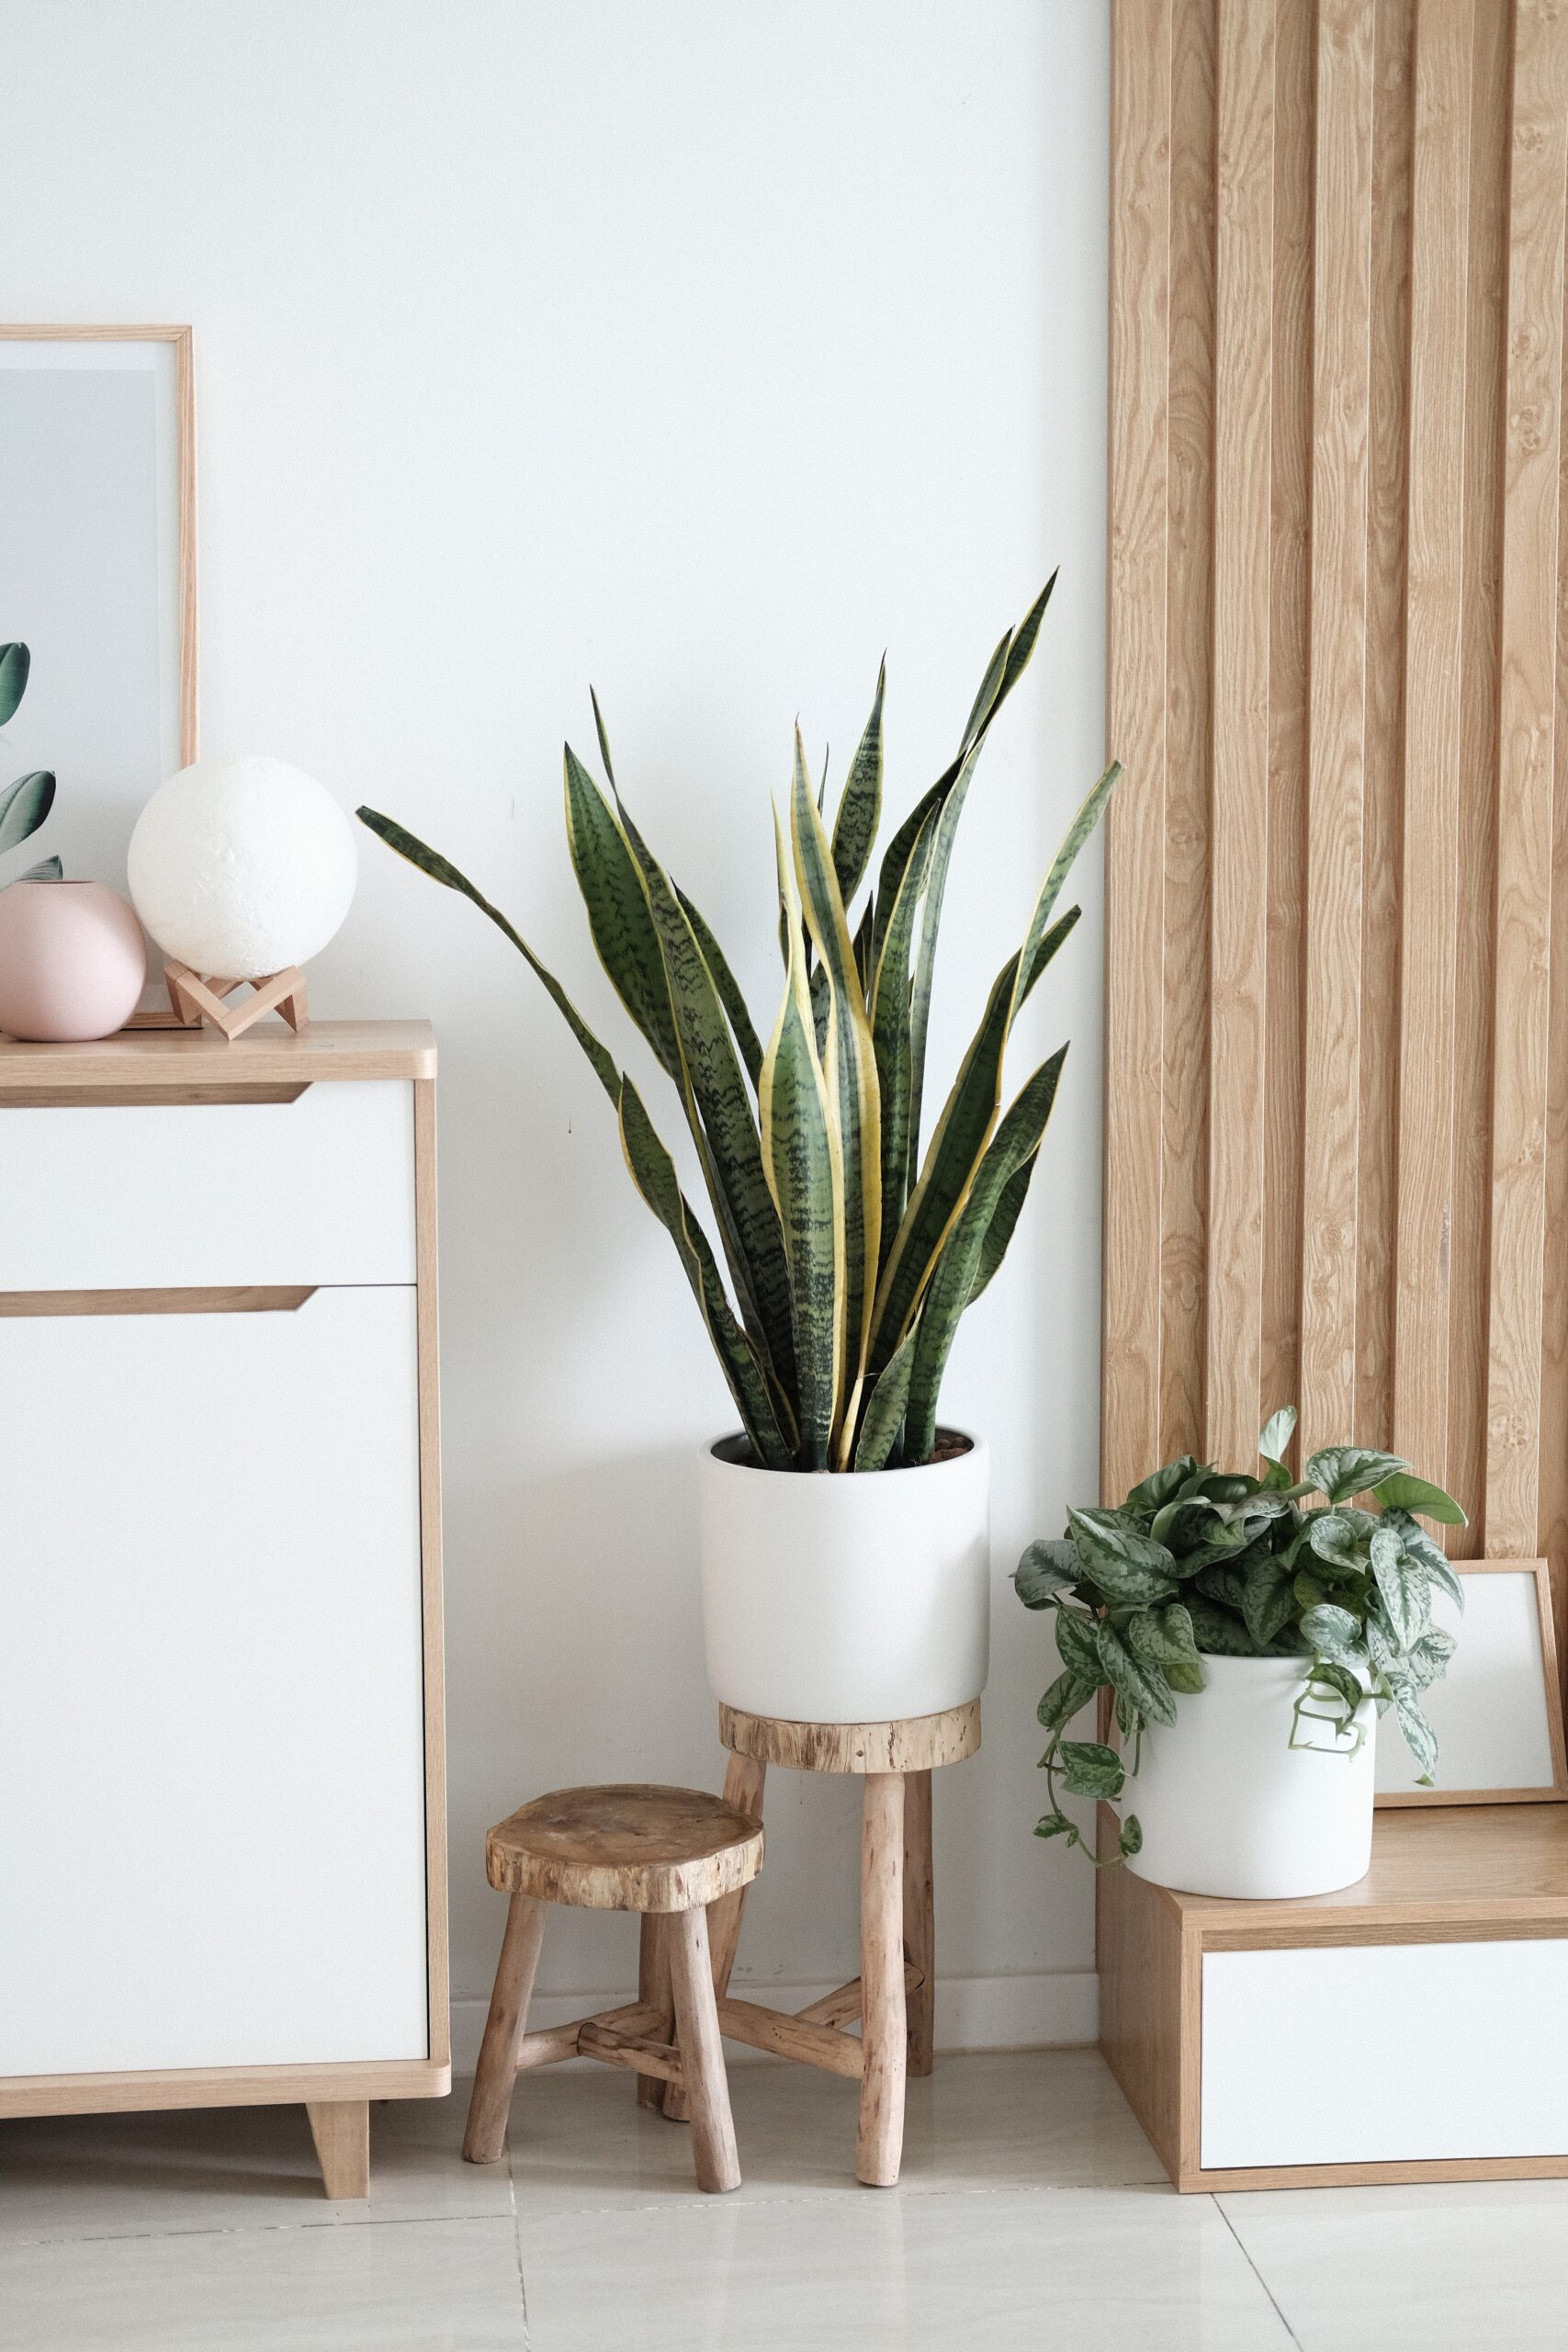 6 Practical Ways to Create Positive Vibes in Your Home and Enhance Your Wellbeing